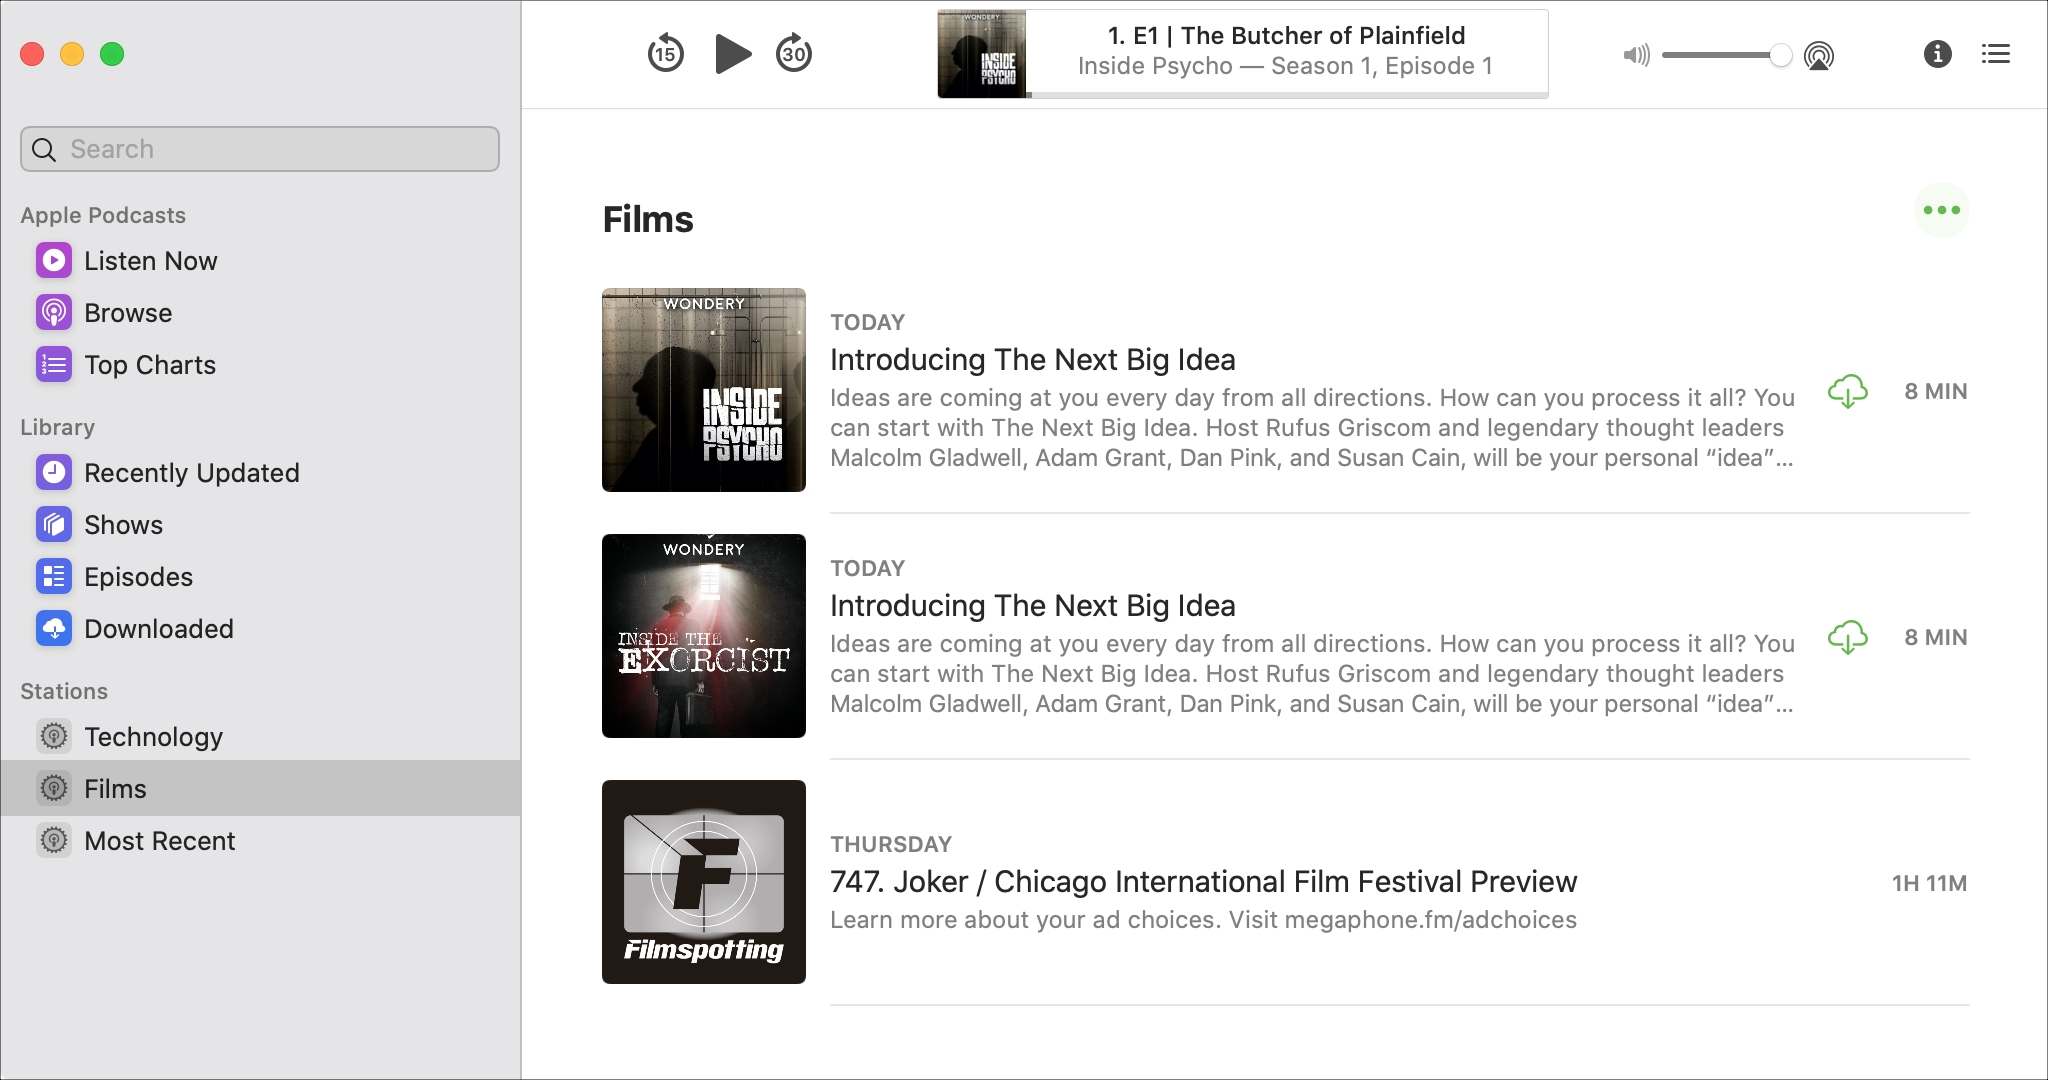 How to create a station in the Podcasts app on Mac